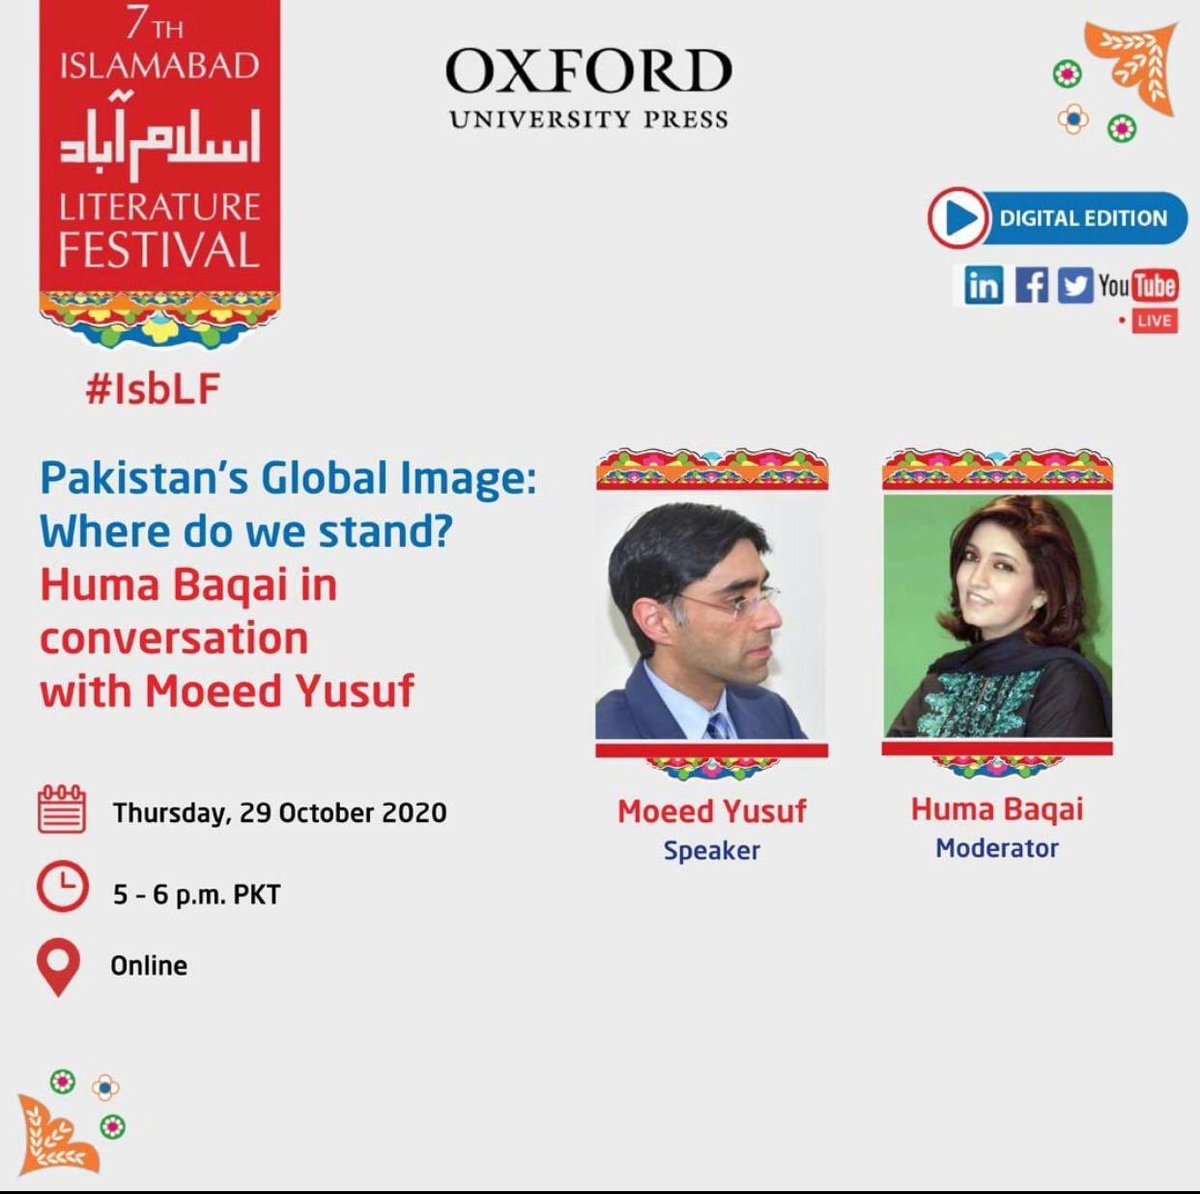 Hear hear today's sessions in #IsbLF2020  Watch it on Twitter: https://t.co/cOXHNC6wLW  #IsbLF #IslamabadLiteratureFestival  @KhiIsbLitFests https://t.co/yATr2hbNbJ